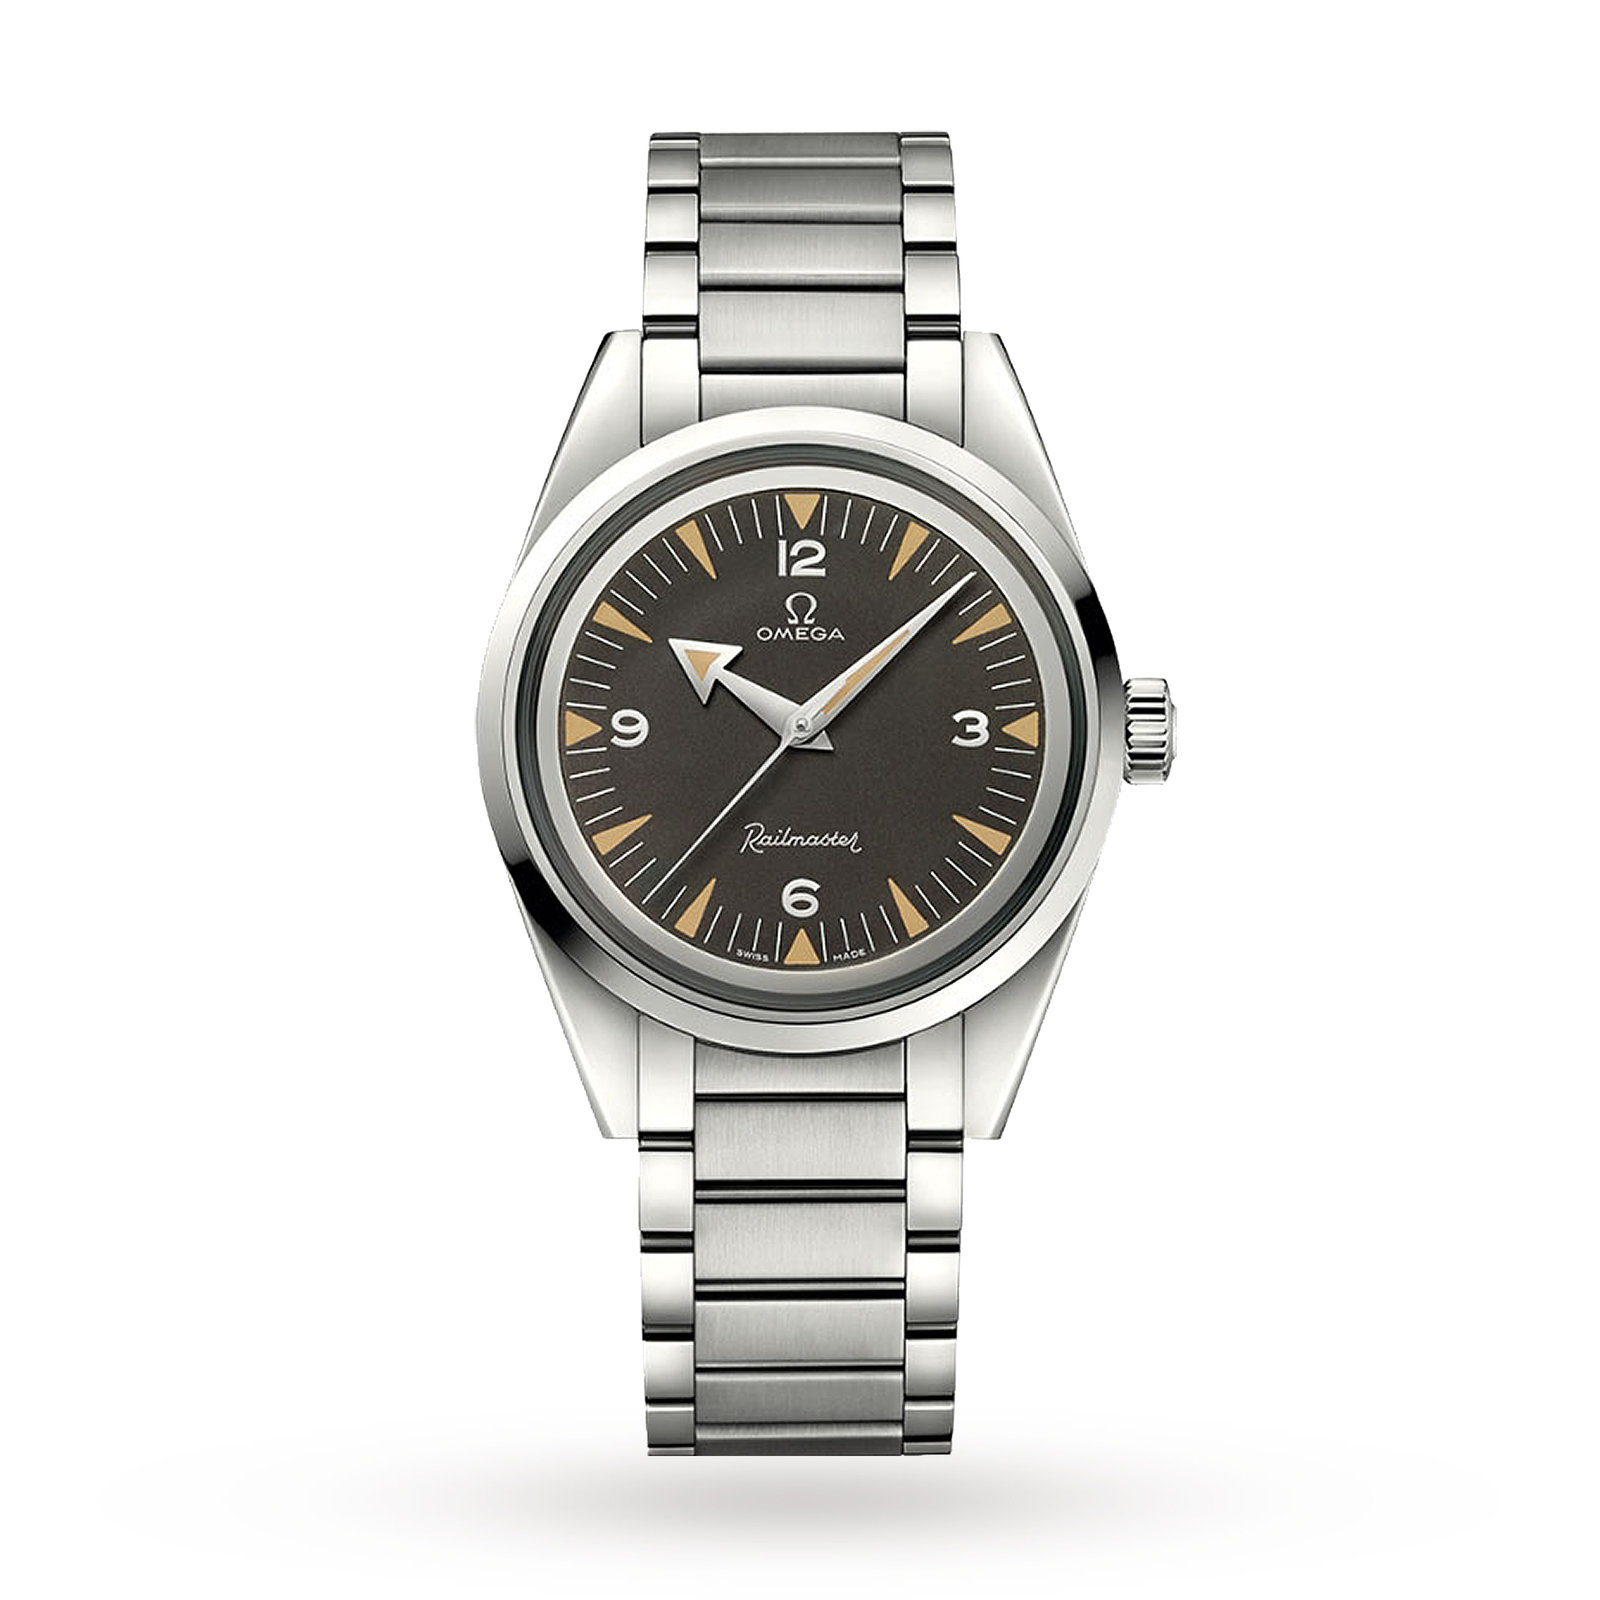 Omega 1957 Railmaster Limited Edition Mens Watch